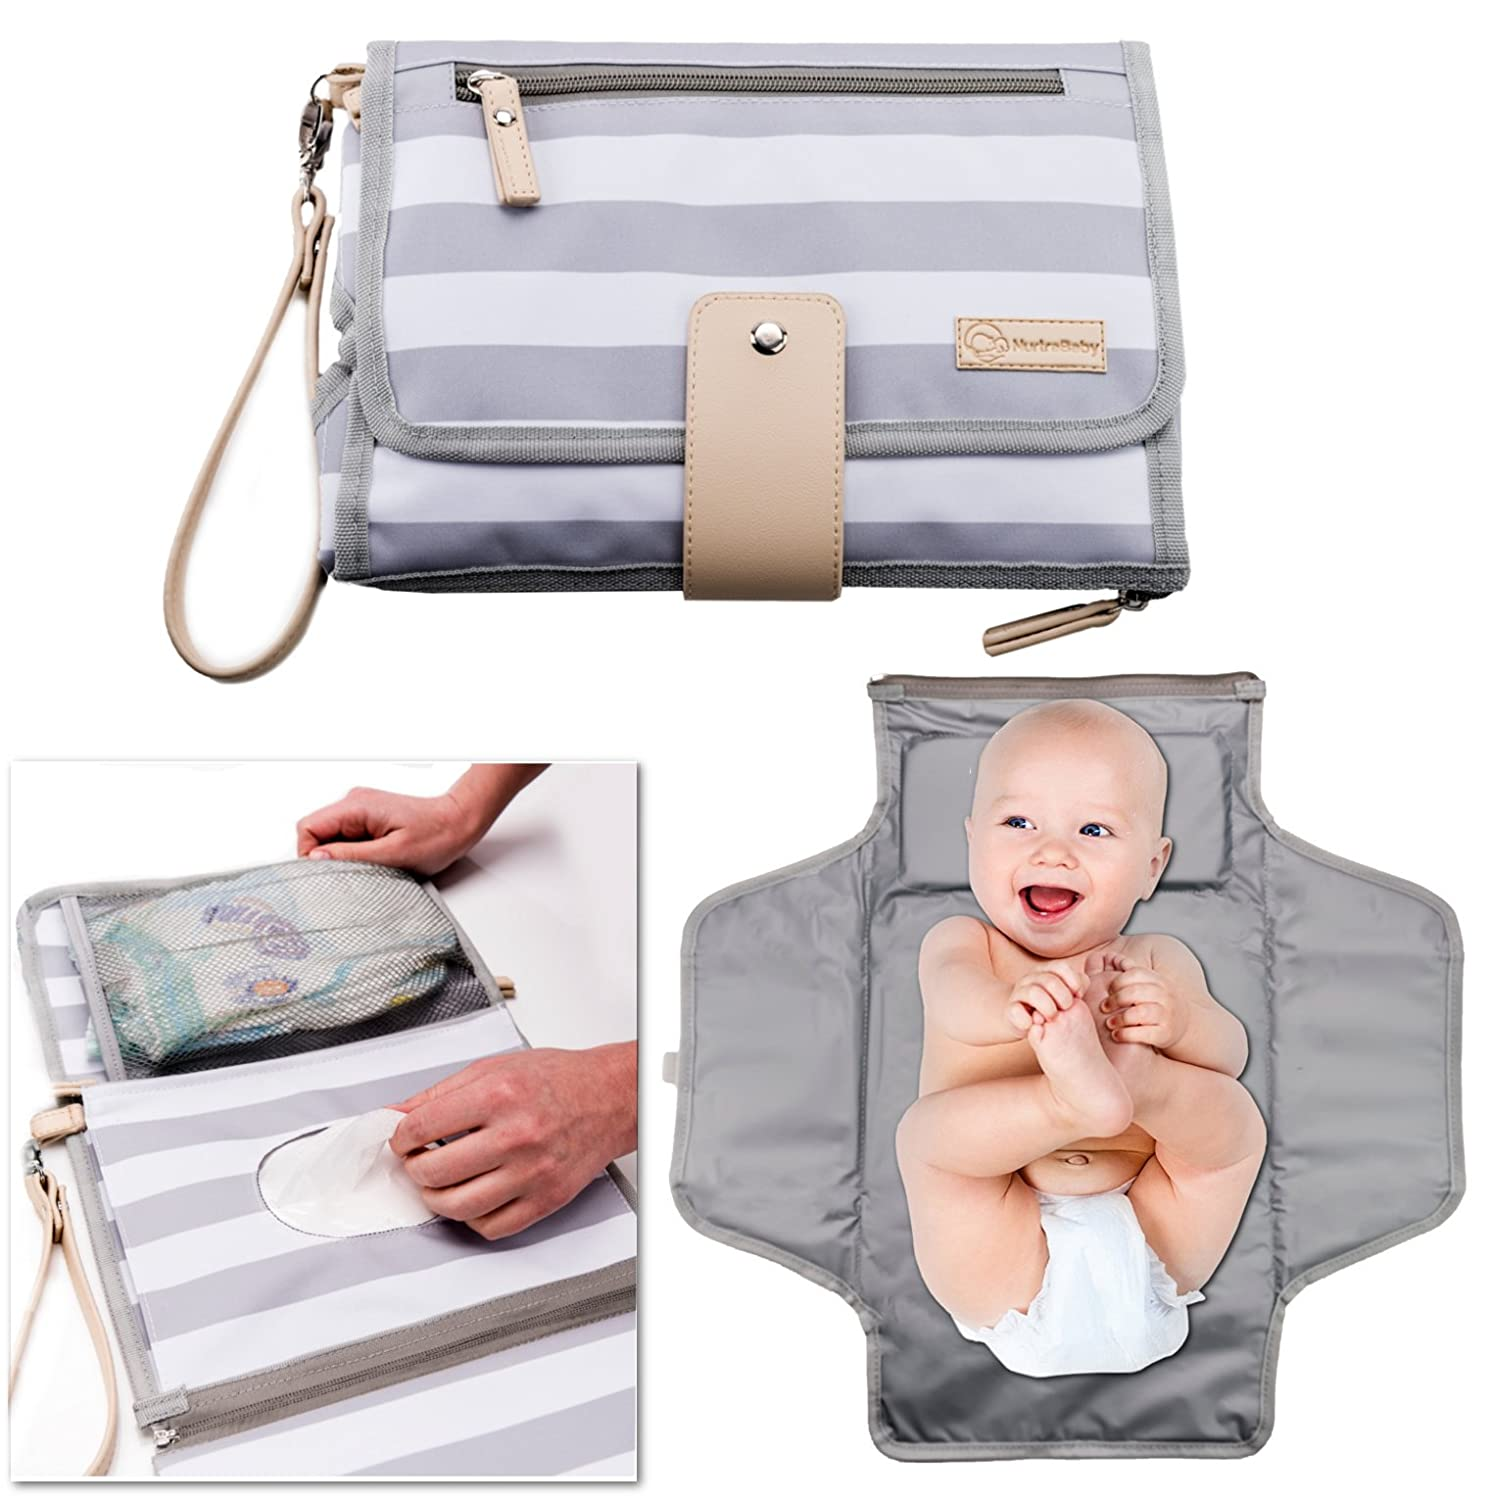 Portable Changing Pad Baby Diaper Station | Newborn Clutch Bag Travel Kit | BPA Free Waterproof Foldable Mat | Wipes Pocket | Infant Registry Shower Gift NurtraBaby